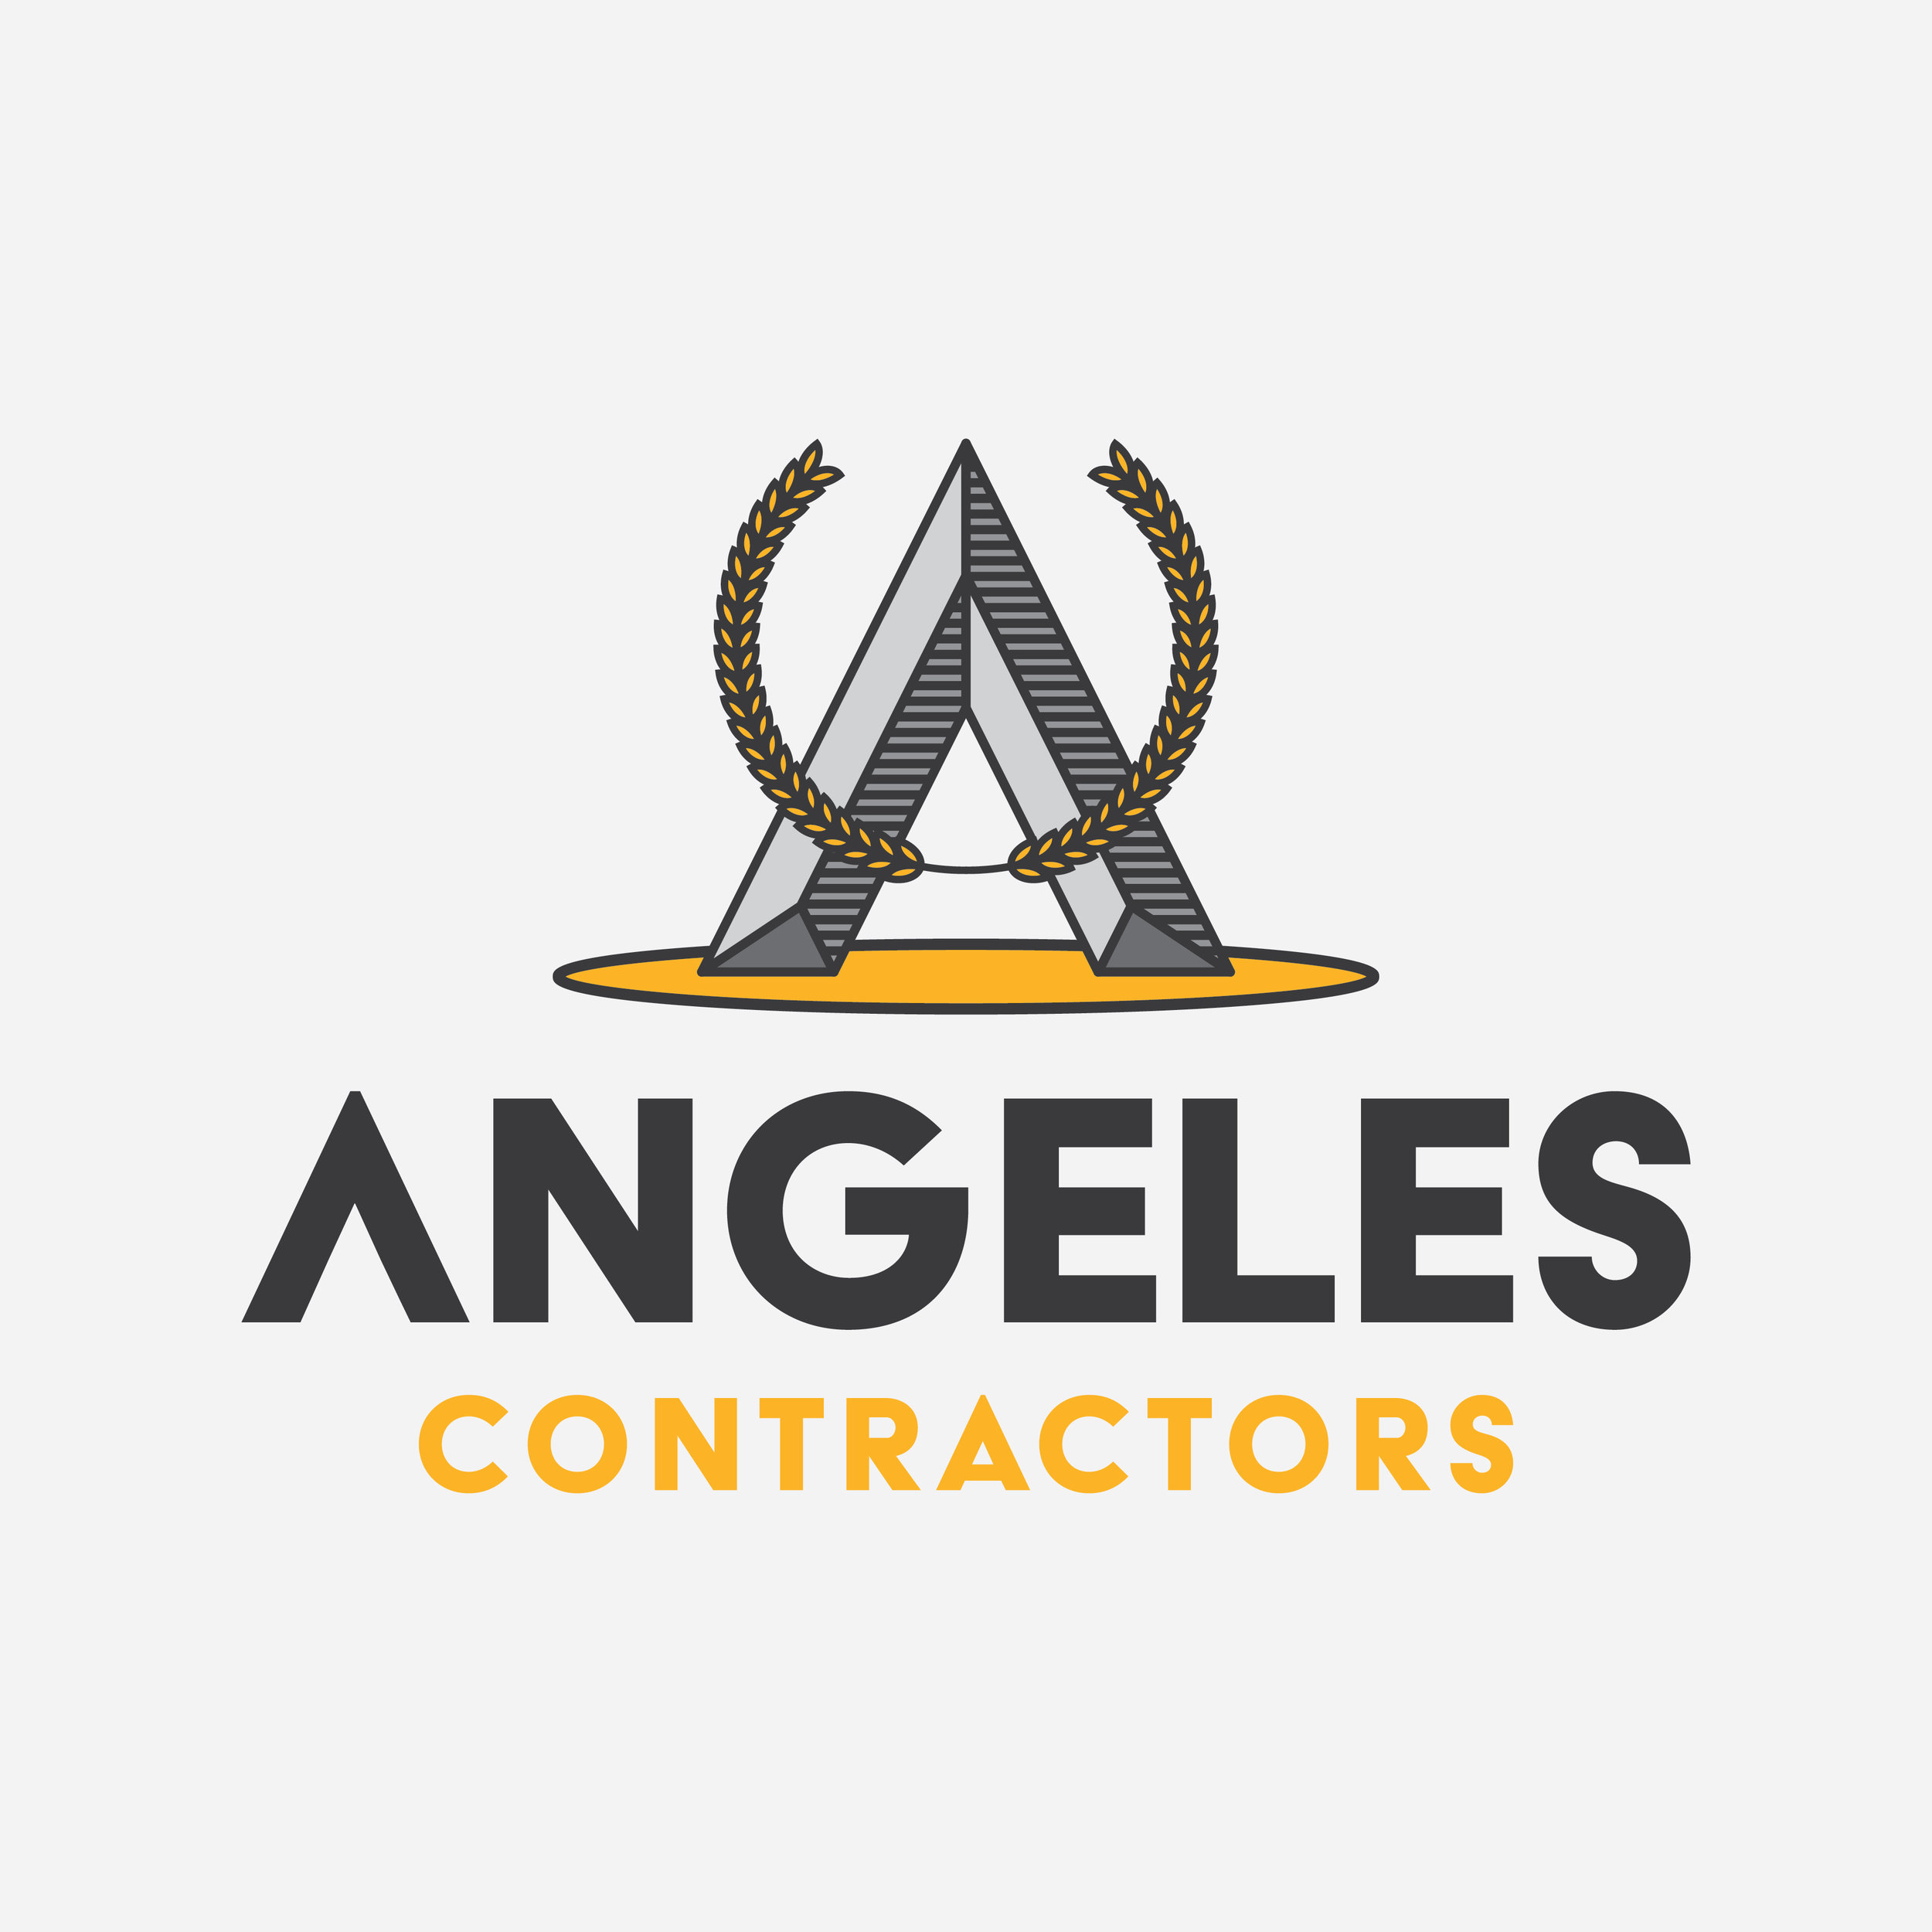 Angeles-Logo-Main-01.jpg